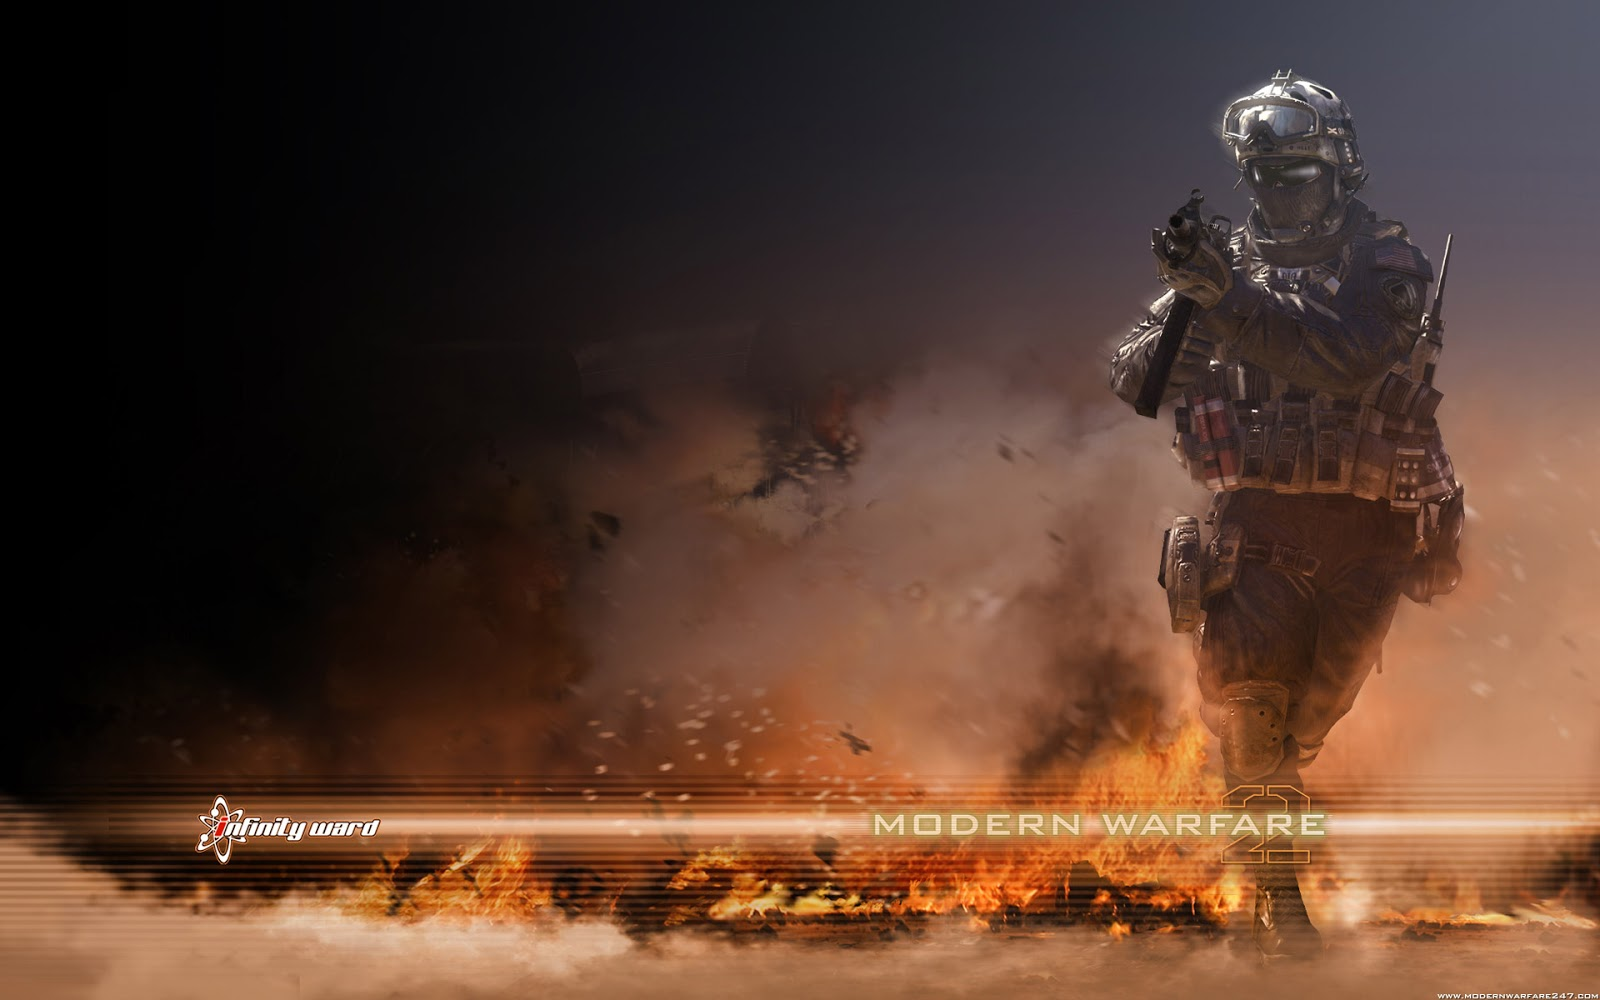 HD WALLPAPERS: Call of Duty Black Ops HD Wallpapers